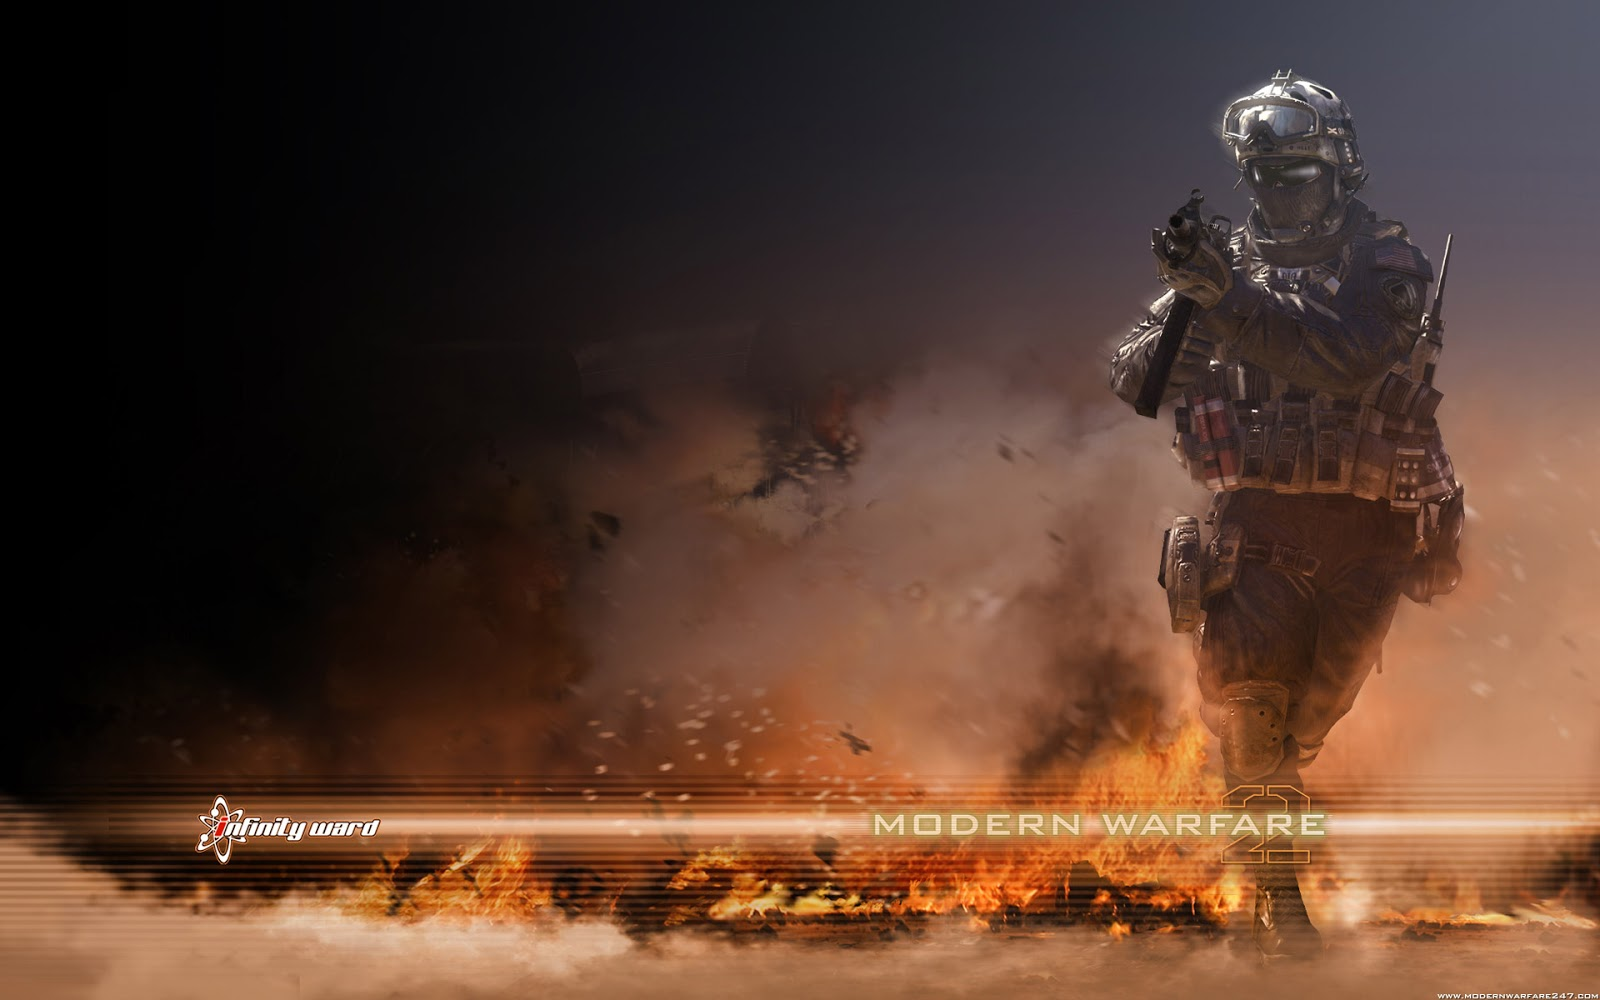 HD WALLPAPERS: Call of Duty Black Ops HD Wallpapers